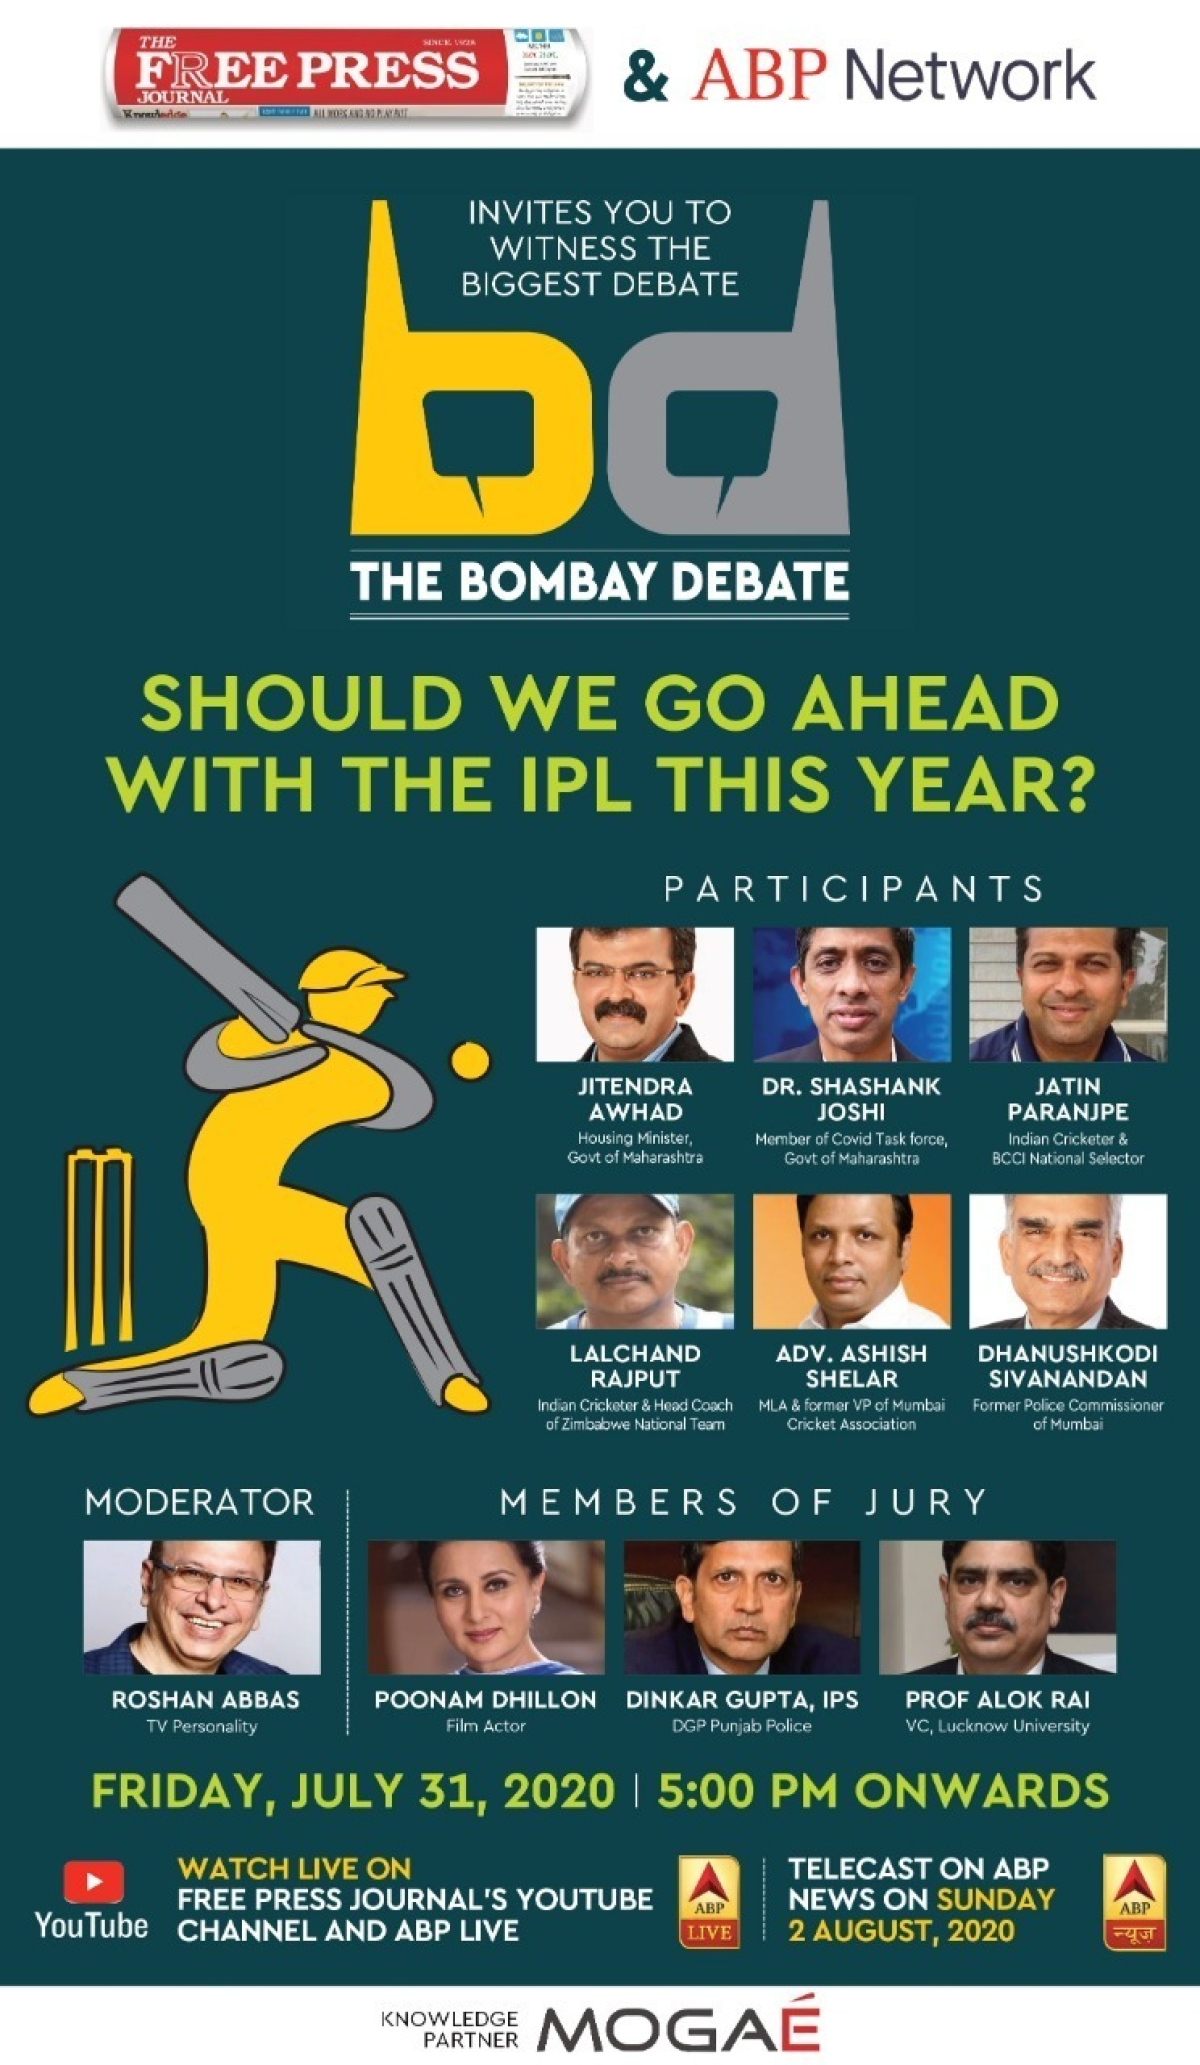 #TheBombayDebate: Should IPL be held at all? Coming soon on FPJ - stay tuned for more details